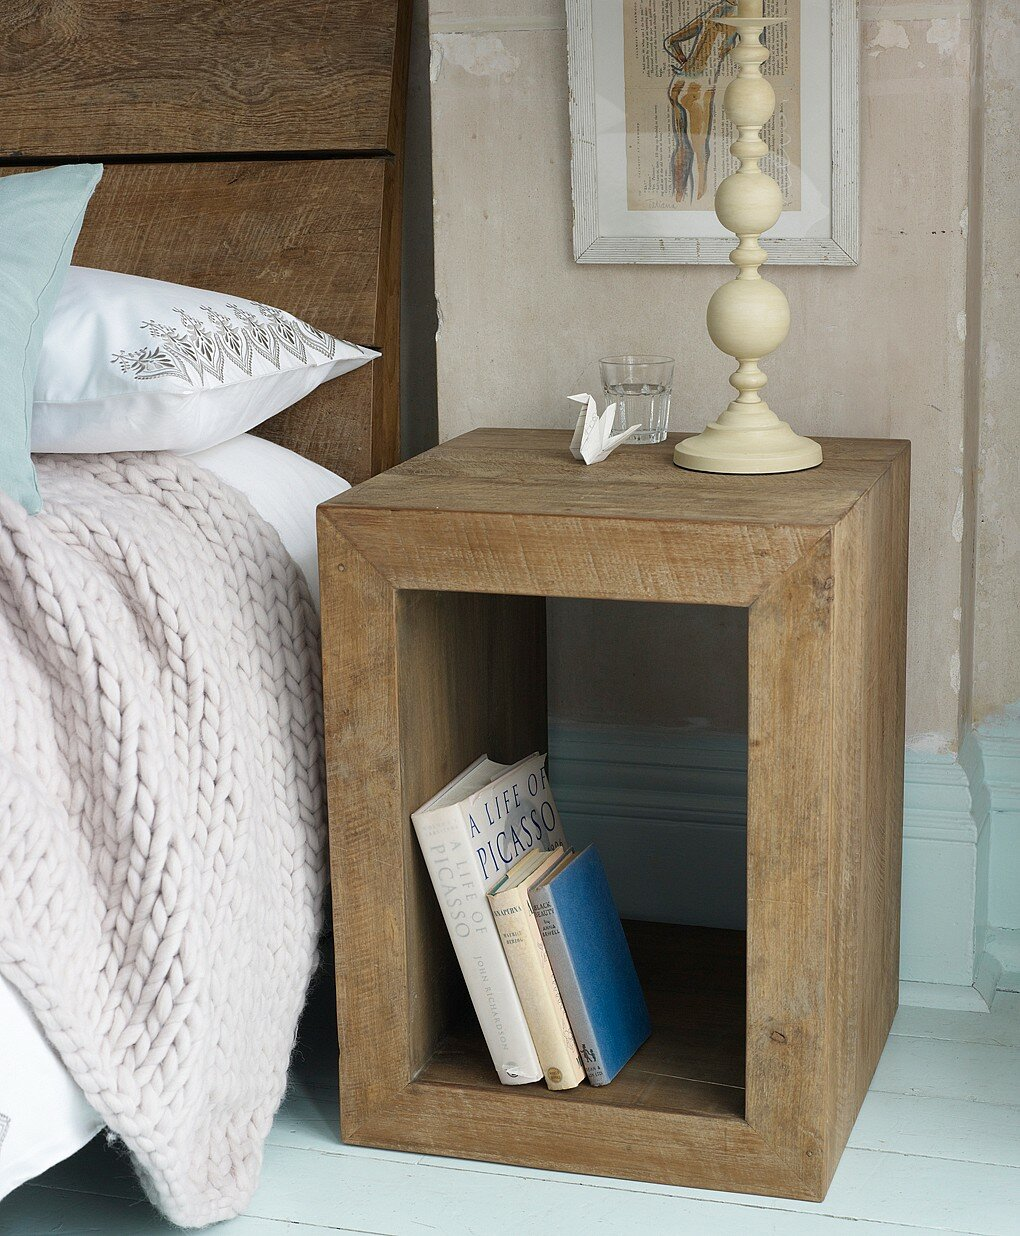 ... table models we share with you bedside table designs in this photo